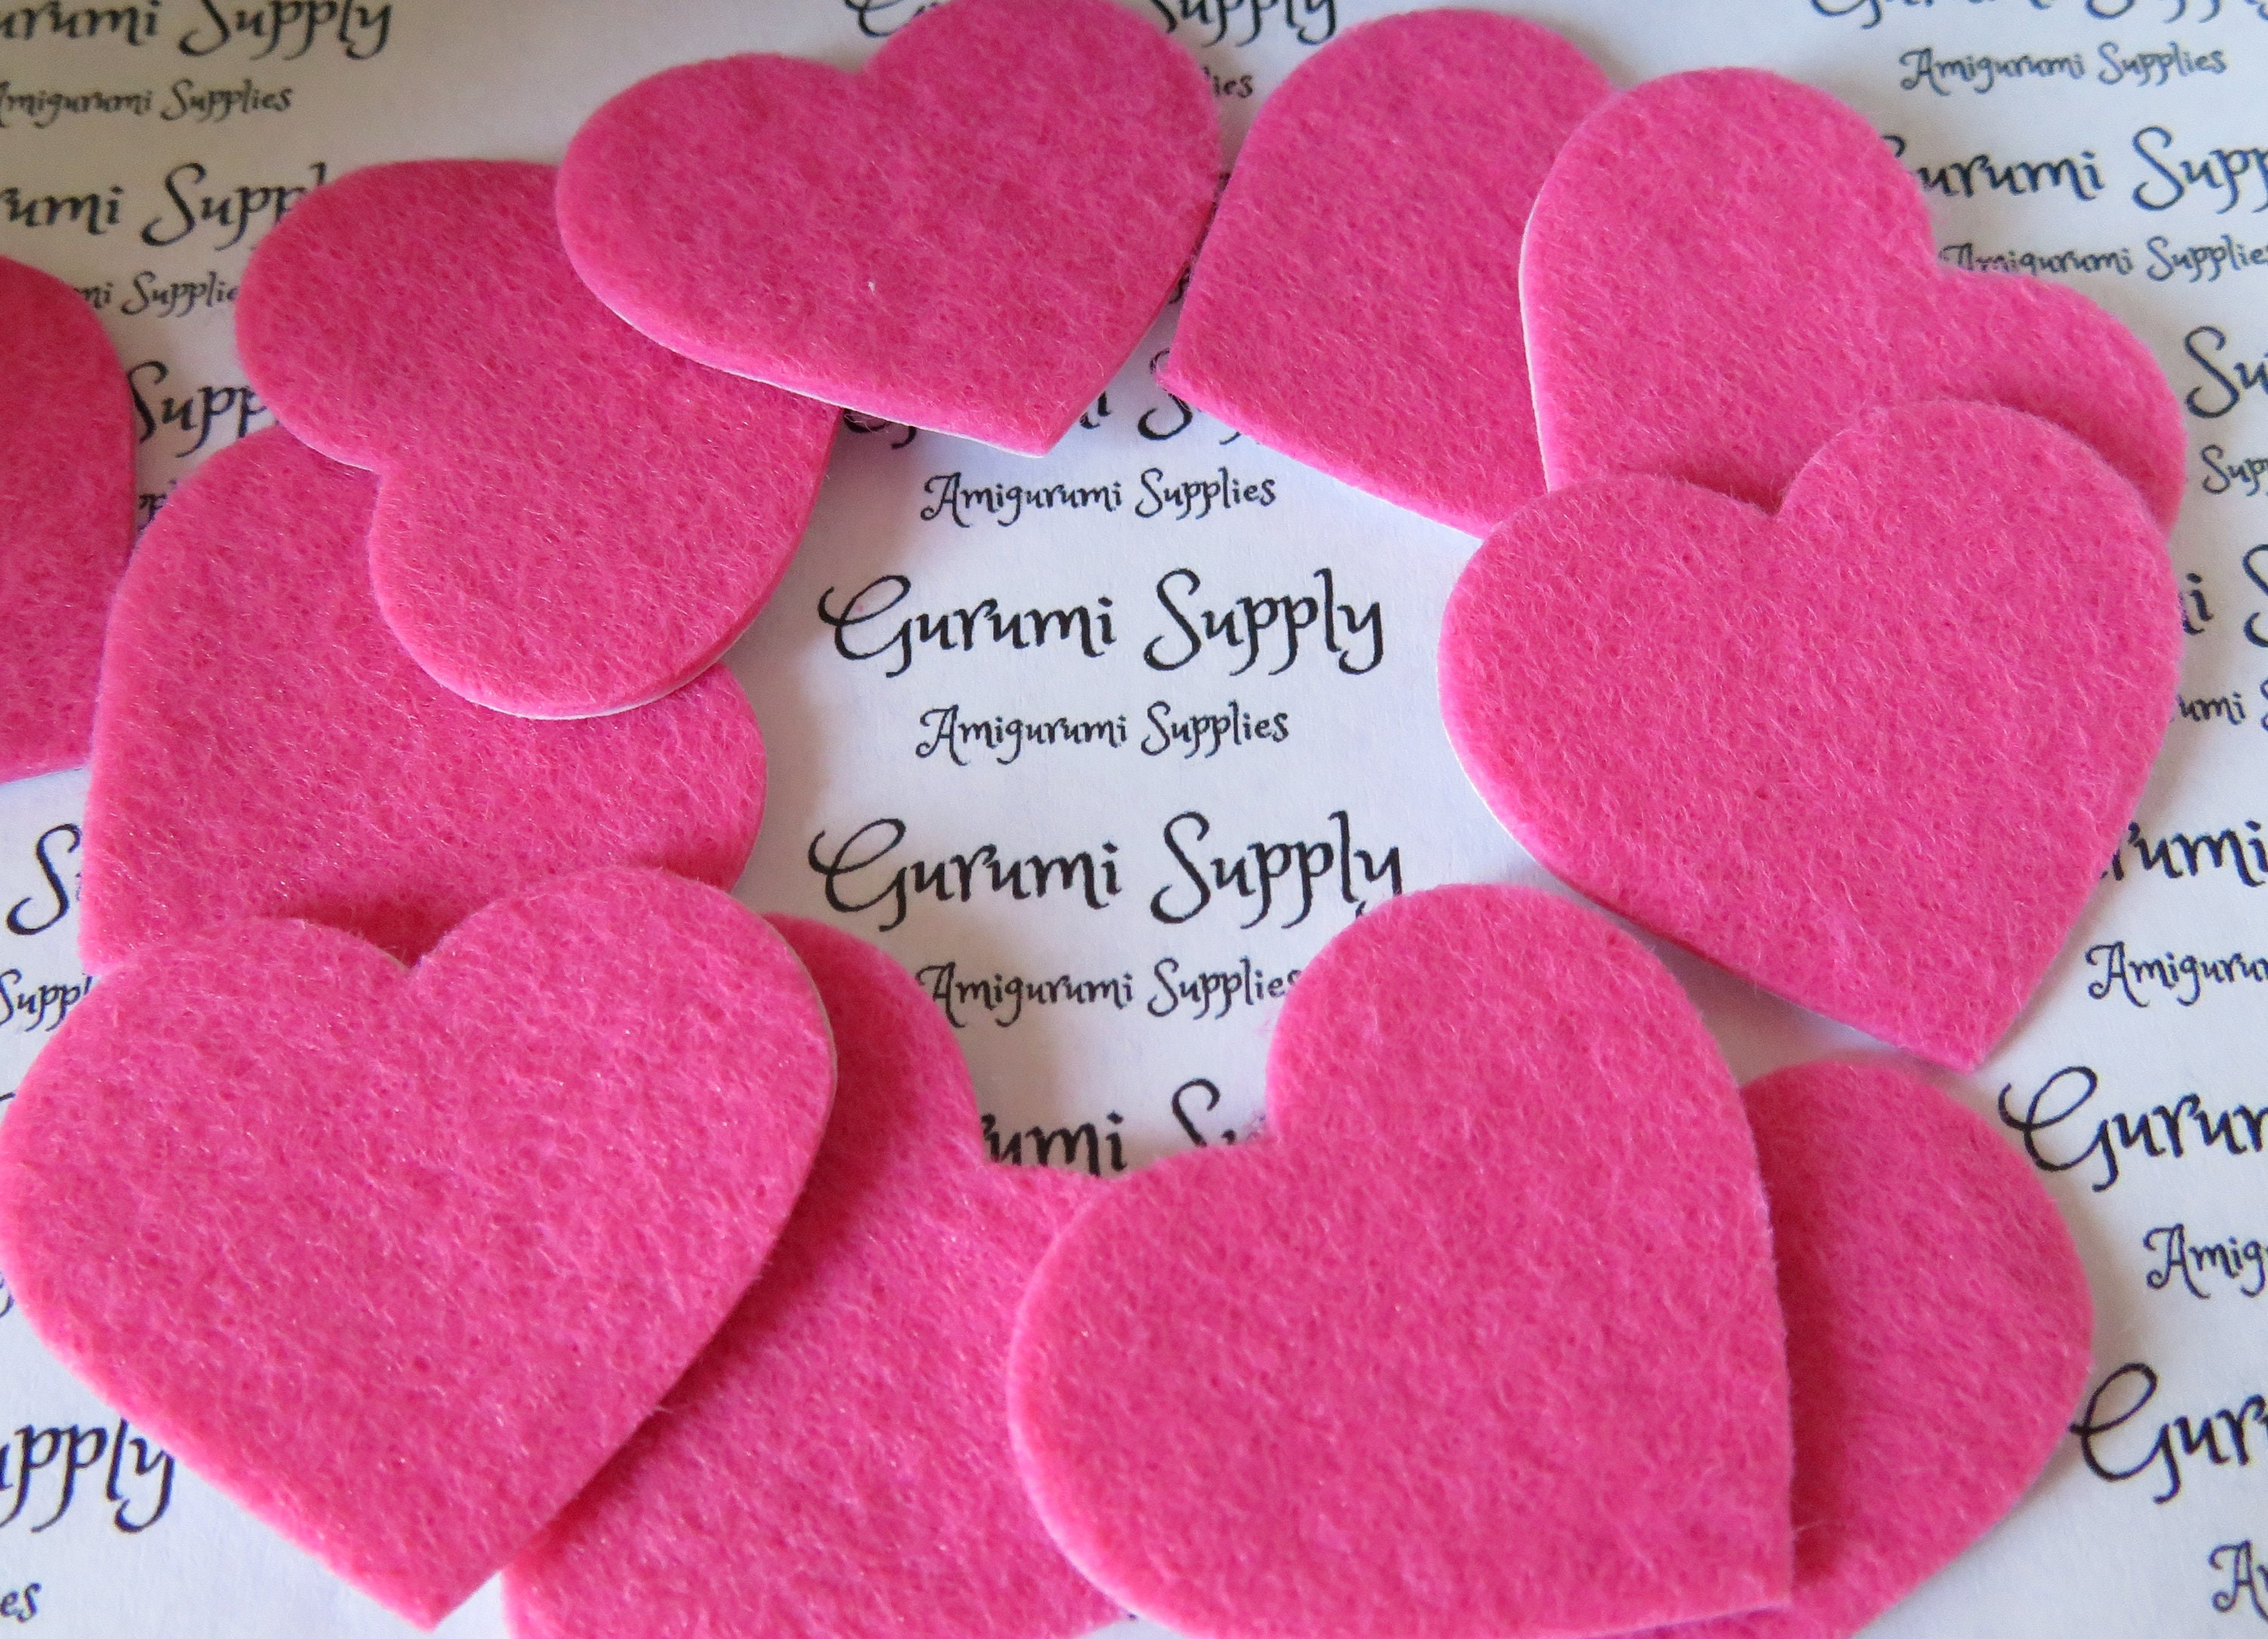 1 4 inch Pink Heart shape felt cut-outs with a sticker